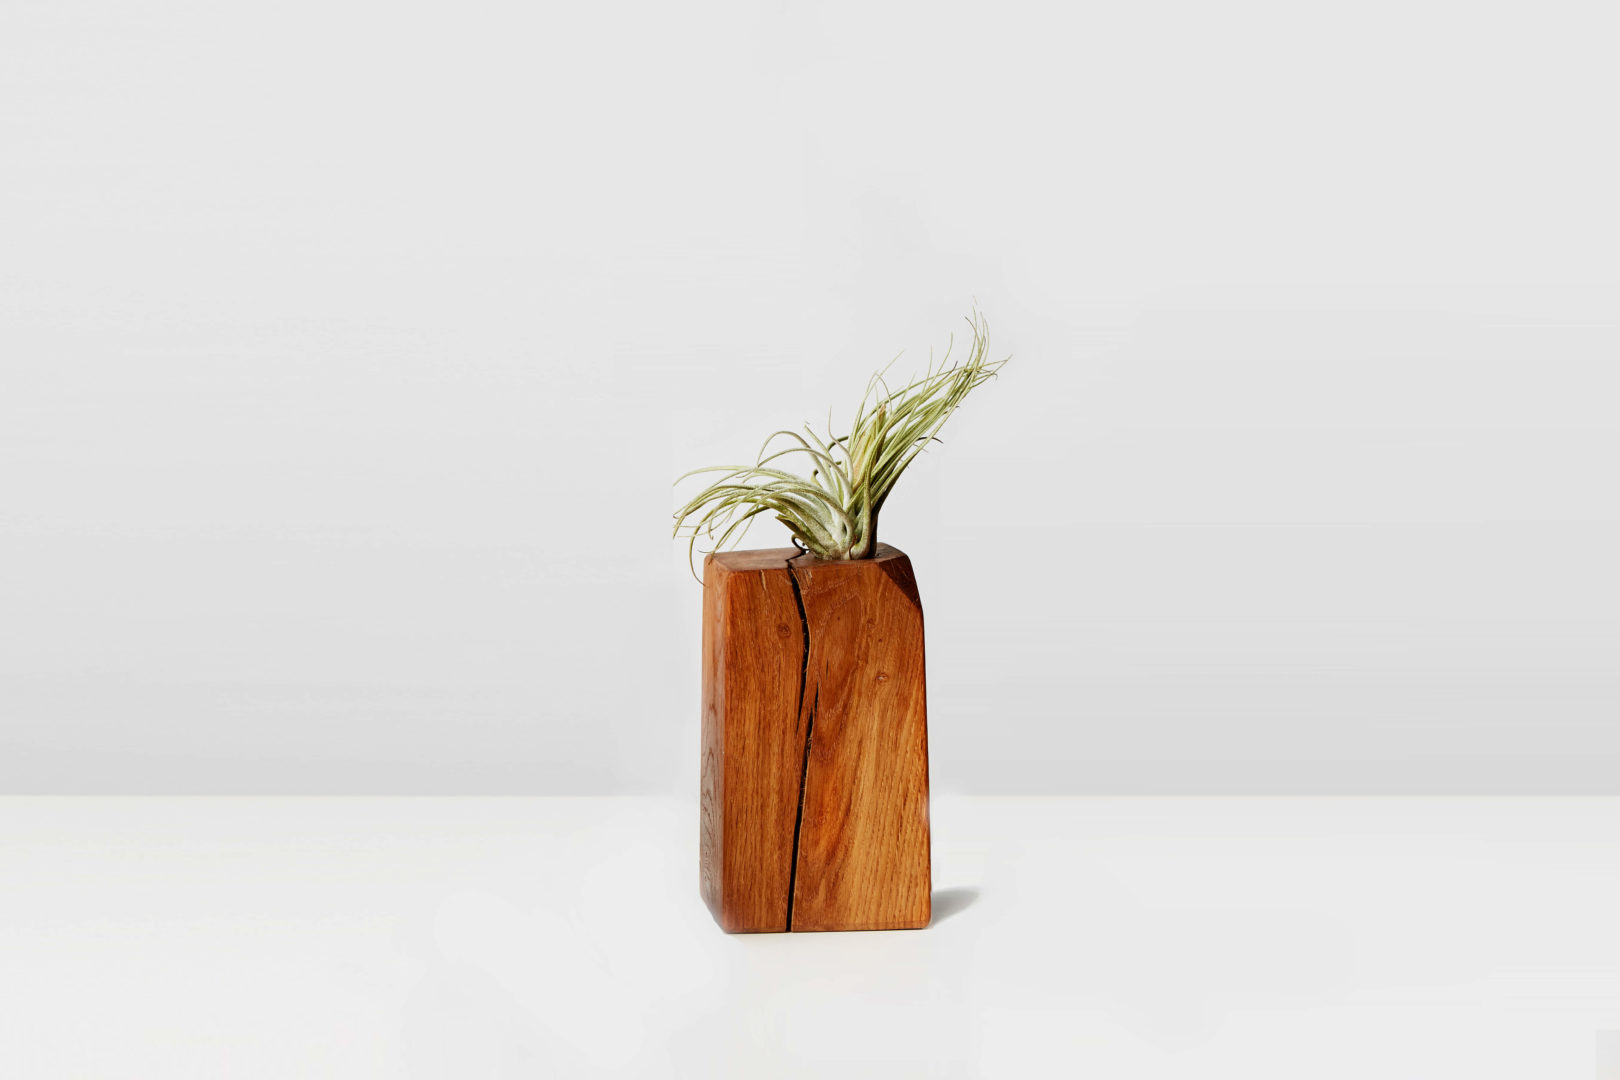 https://www.delapalma.eco/wp-content/uploads/2018/09/block-airplant-roble.jpg